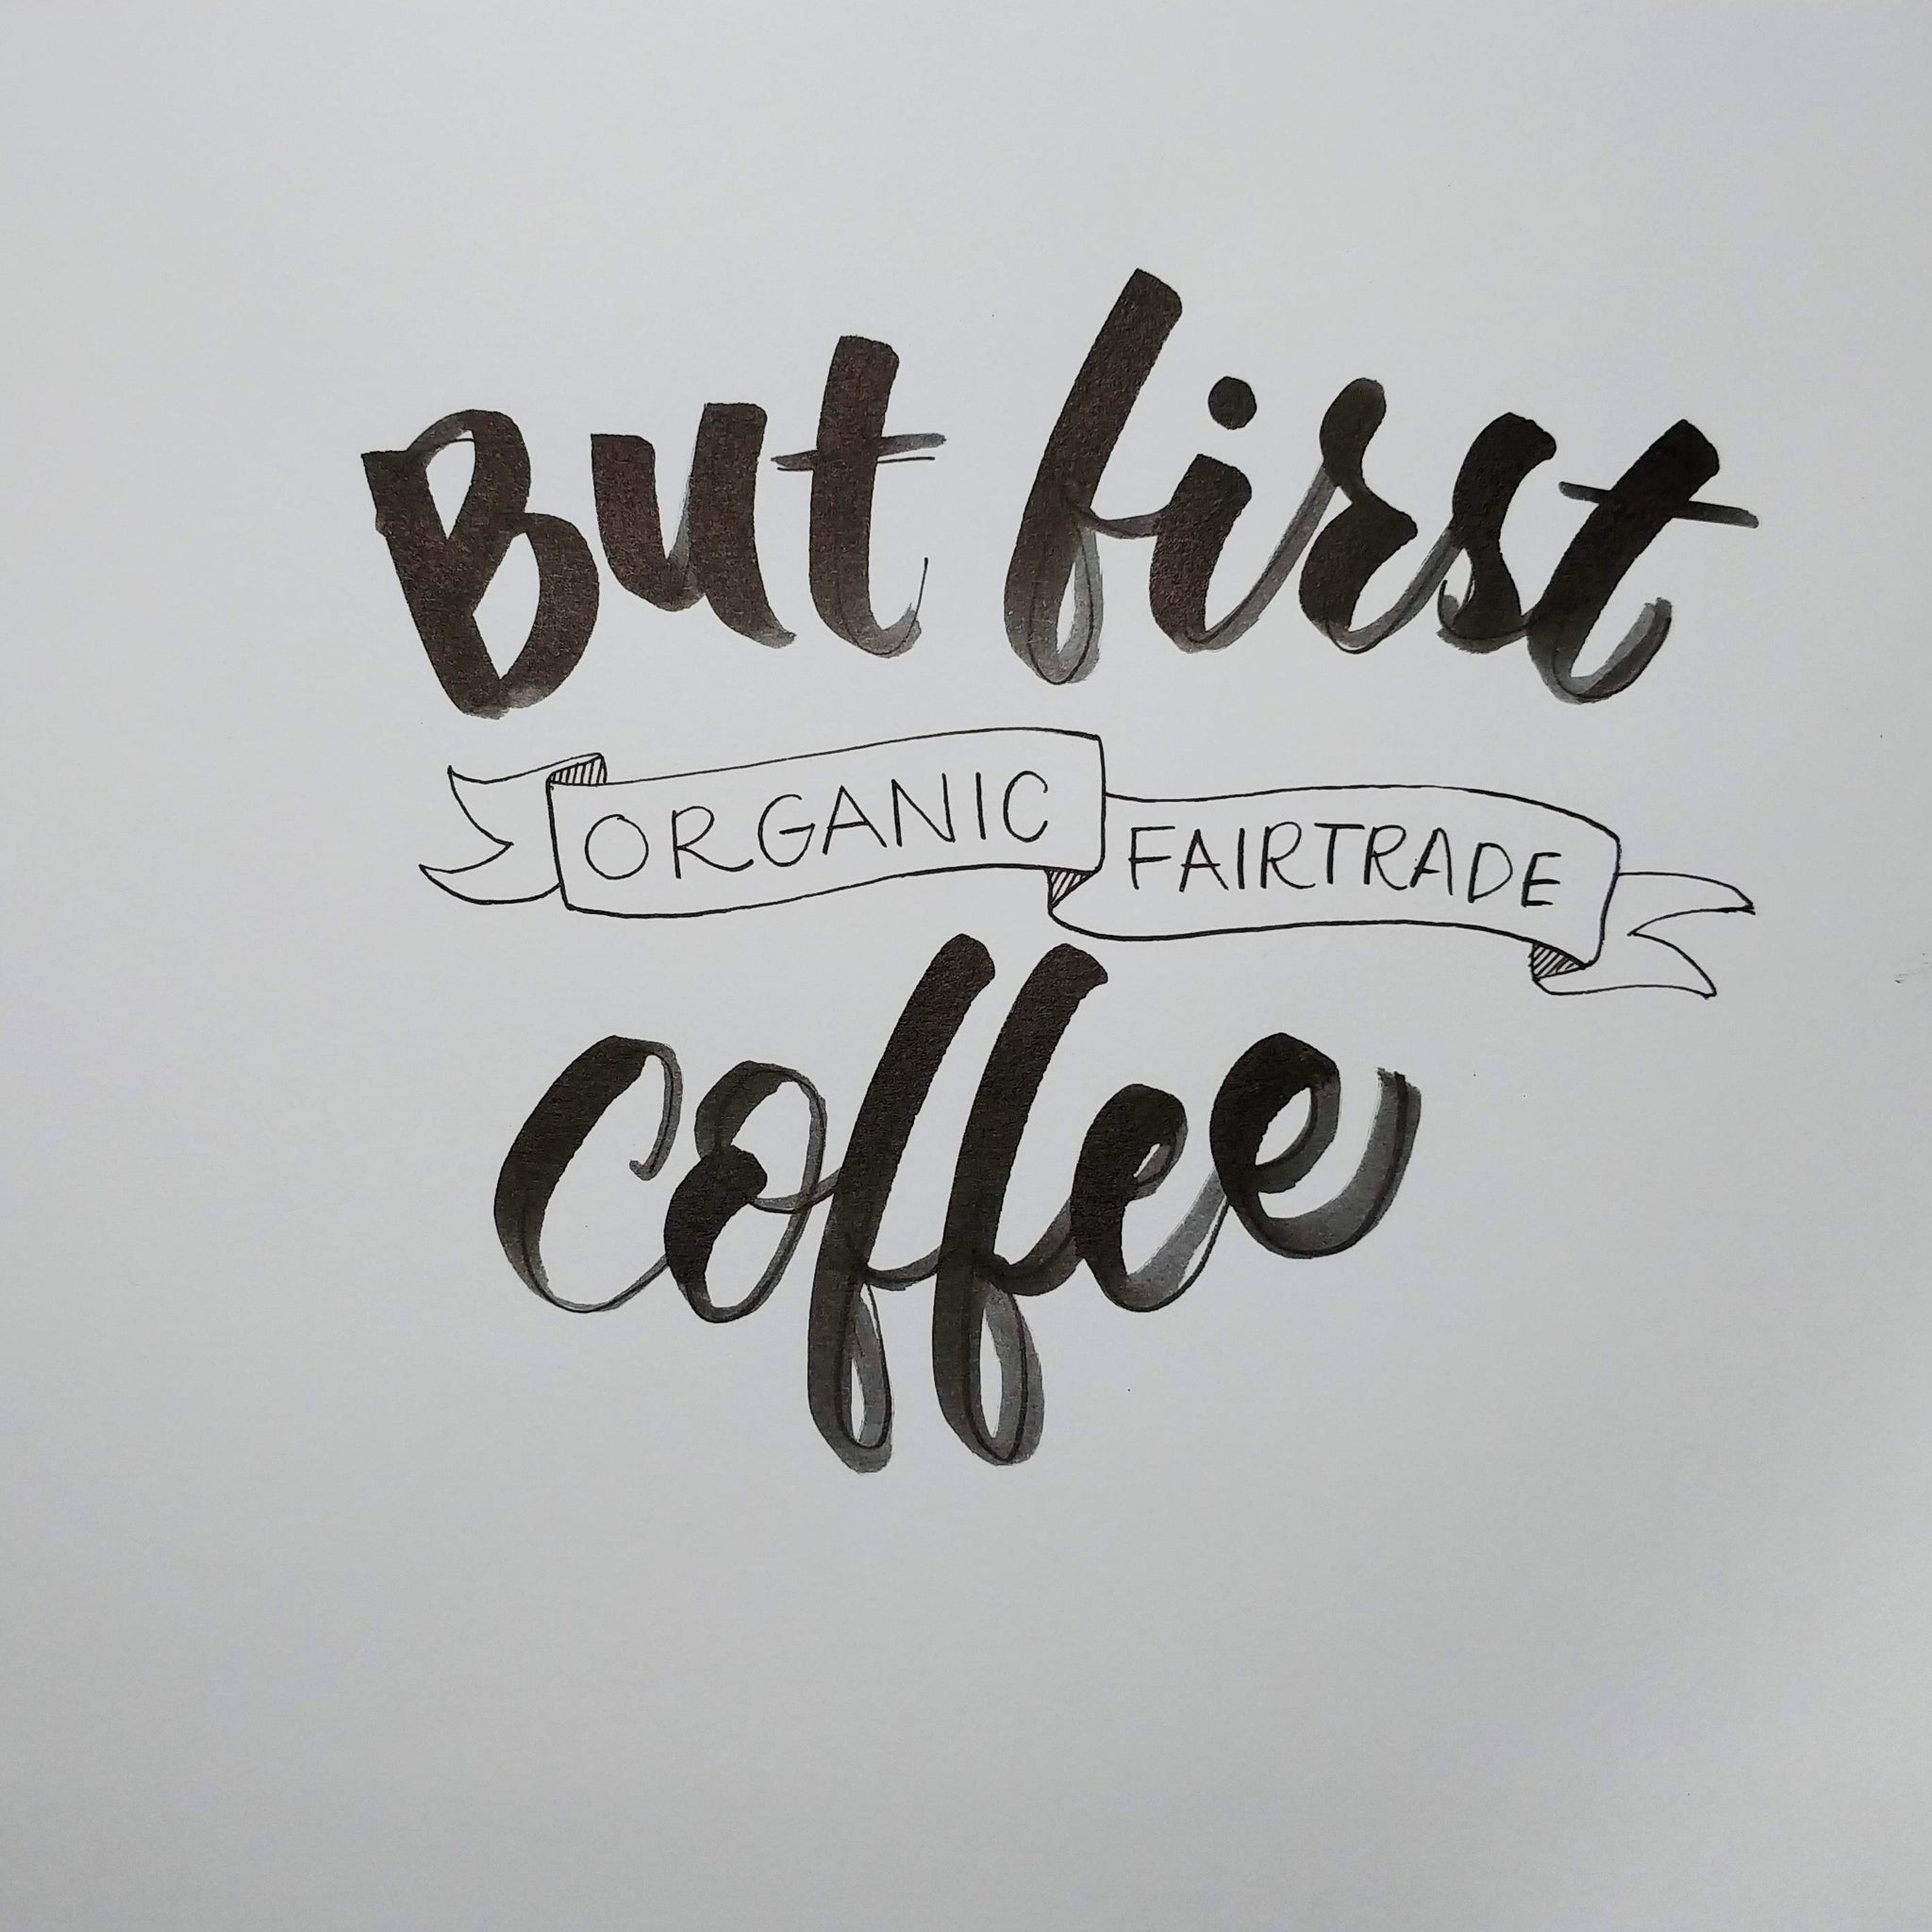 But first... not just any old coffee!